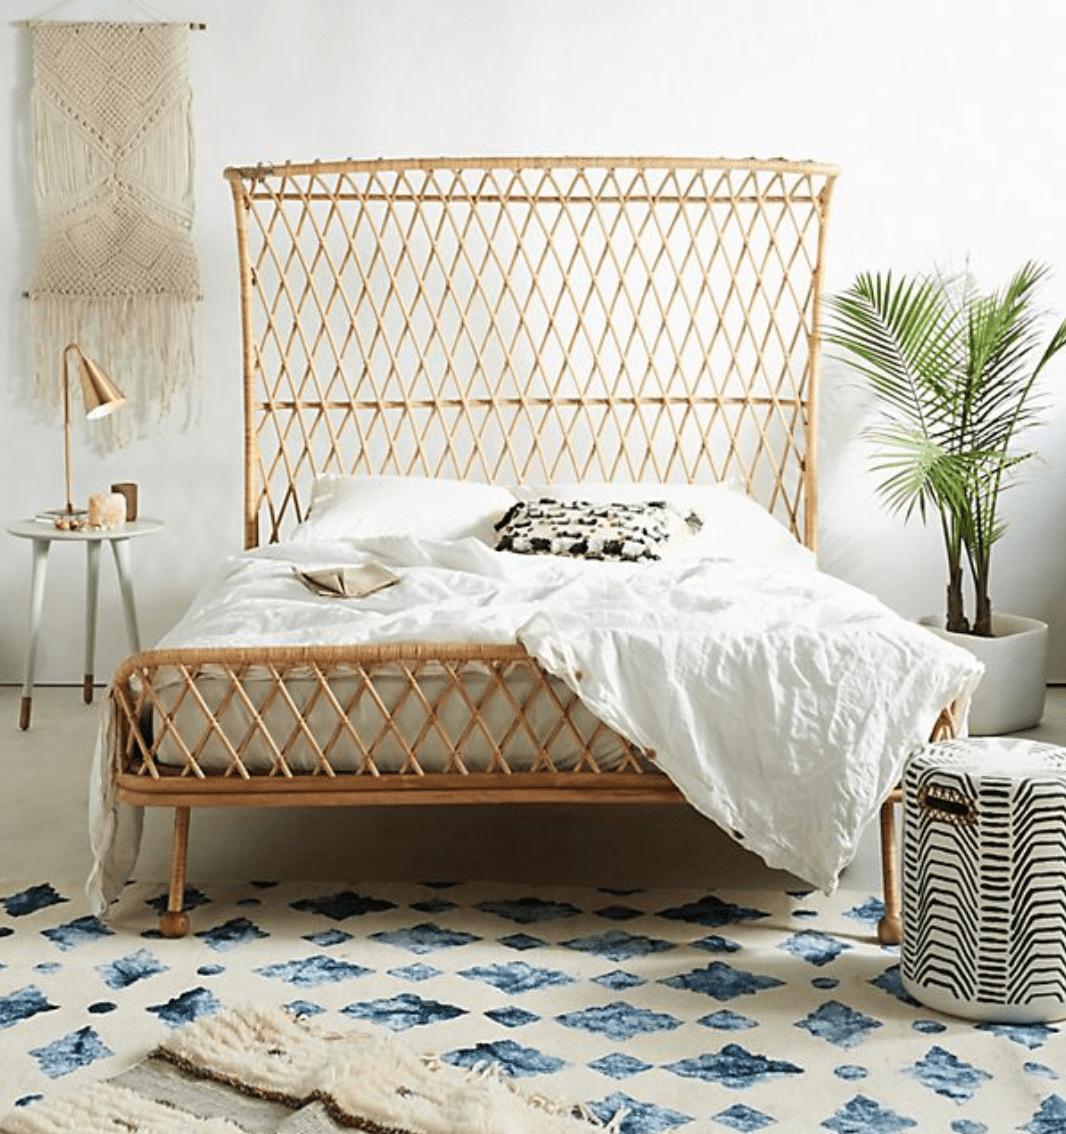 Buying Guide Rattan Beds and Headboards Rattan bed